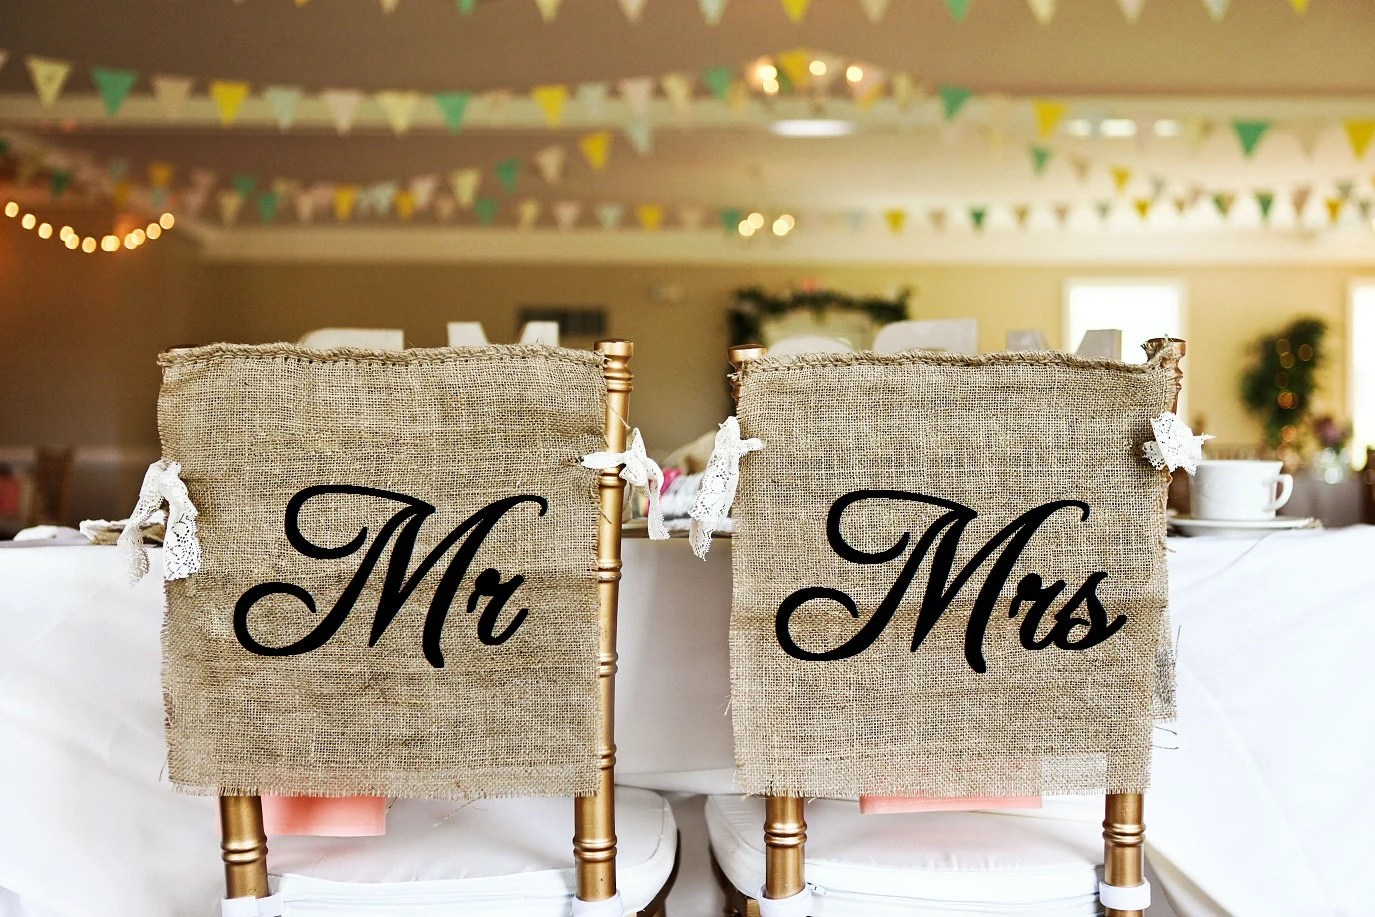 burlap chair covers for folding chairs vintage eames rustic and lace mr mrs wedding cover signs